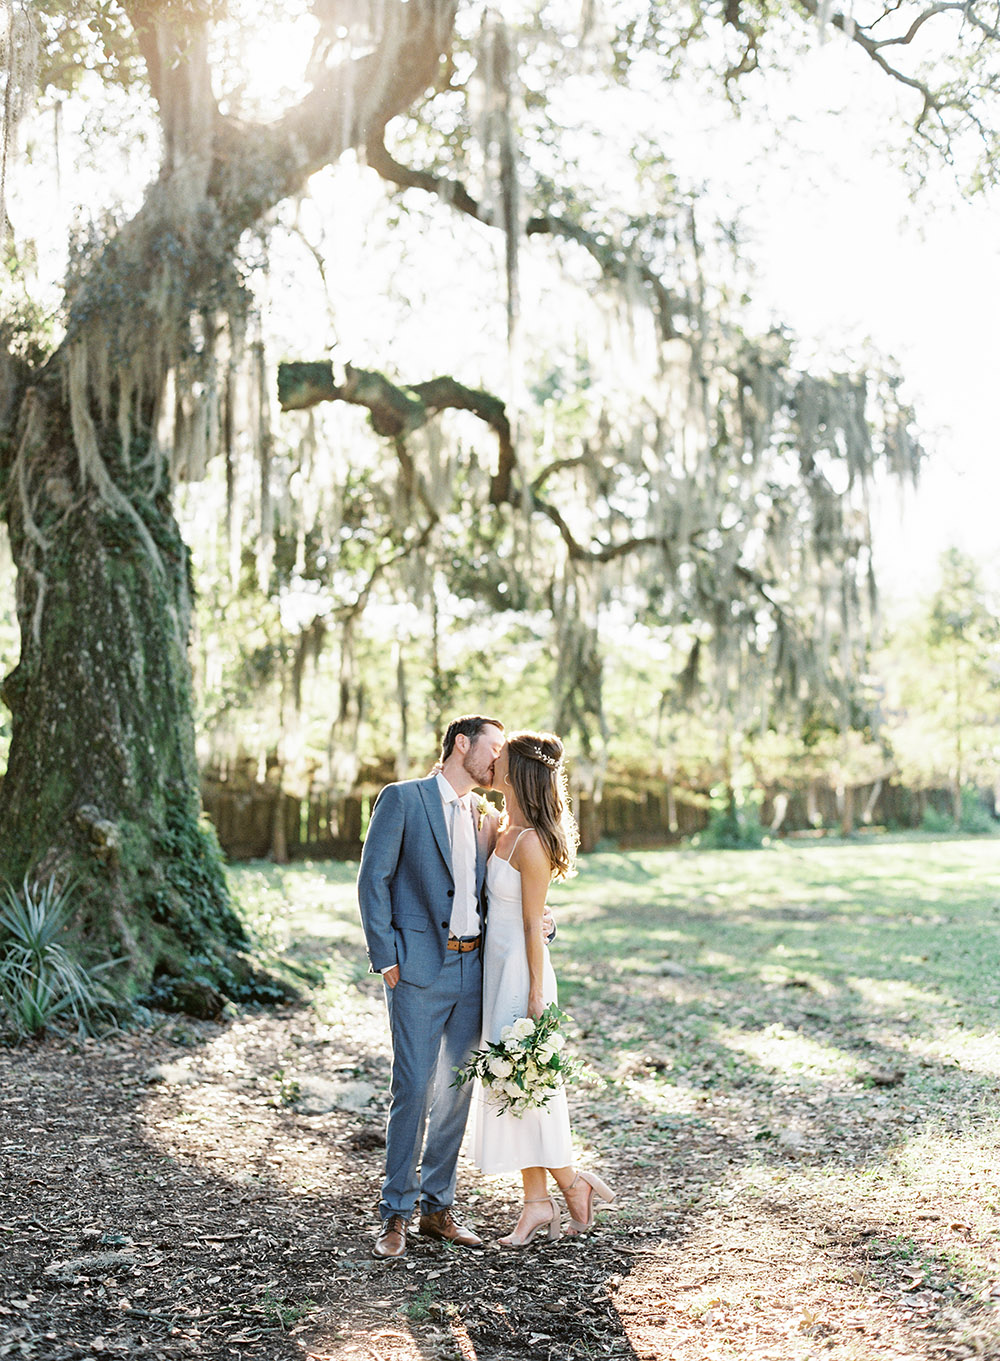 Newlyweds kiss at the Tree of Life in Audubon Park by Peony Photography